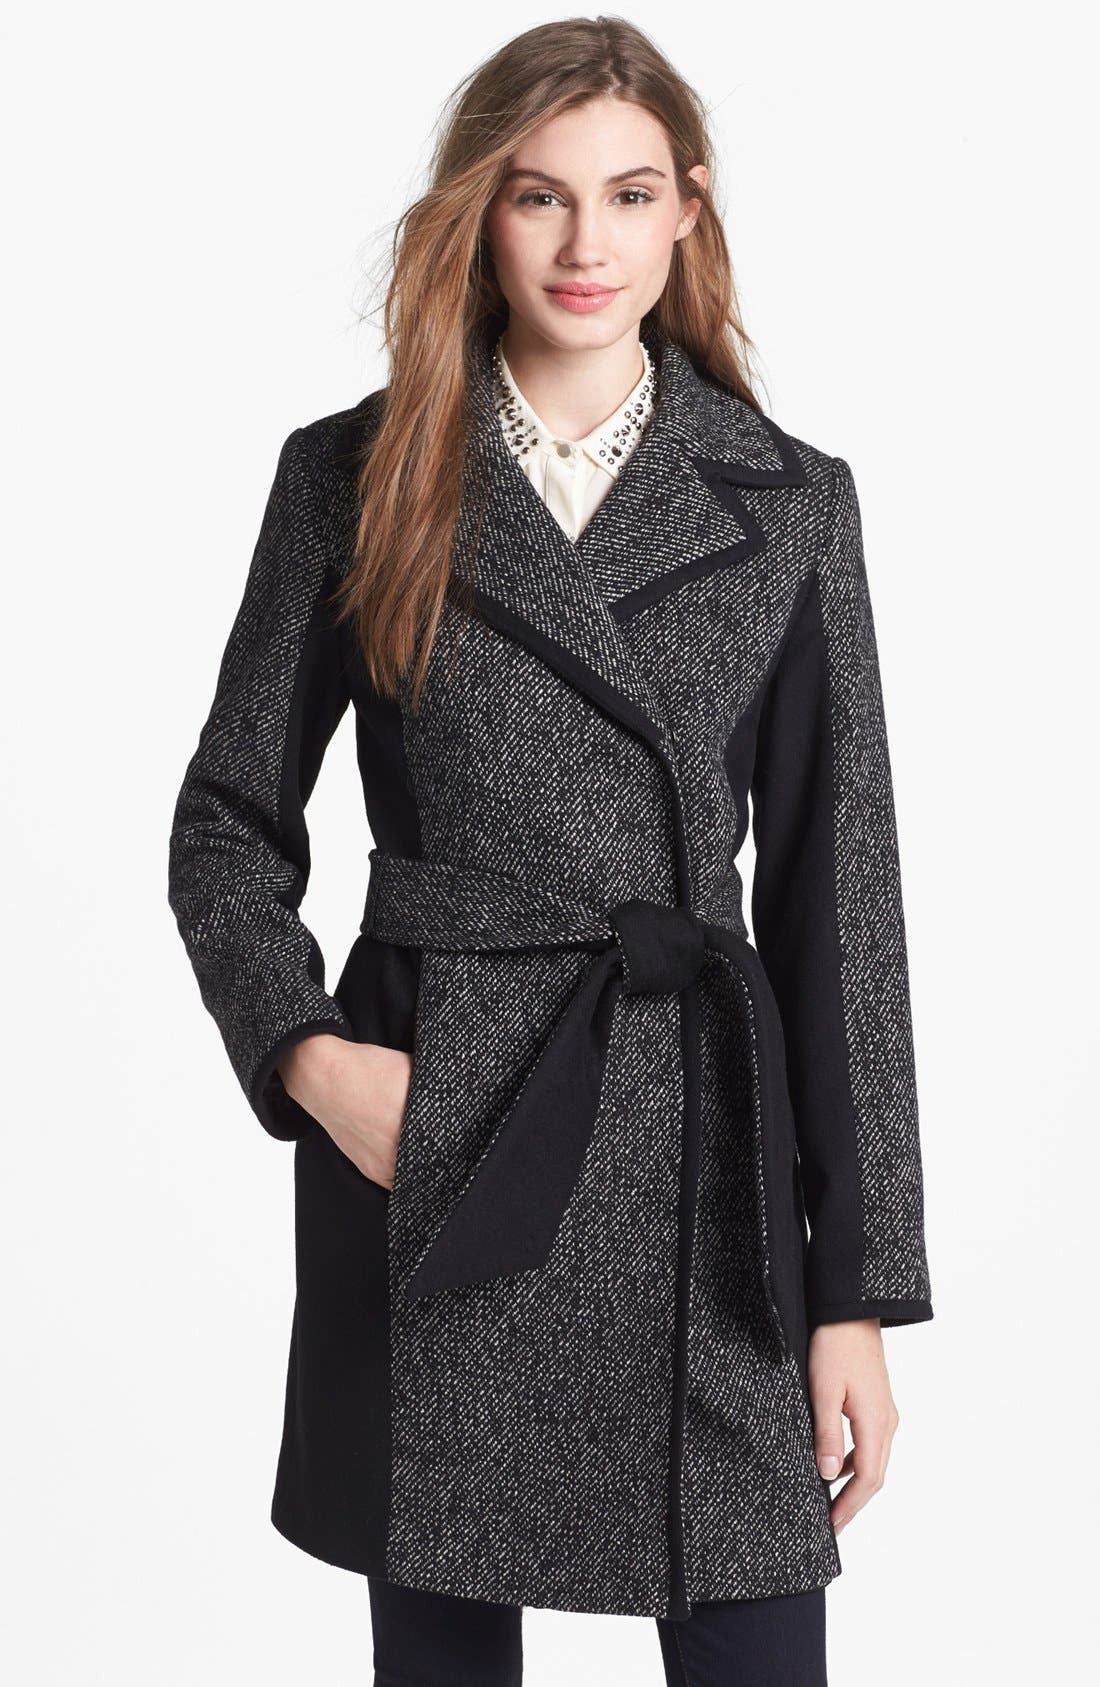 Main Image - Kristen Blake Belted Colorblocked Tweed Coat (Petite)